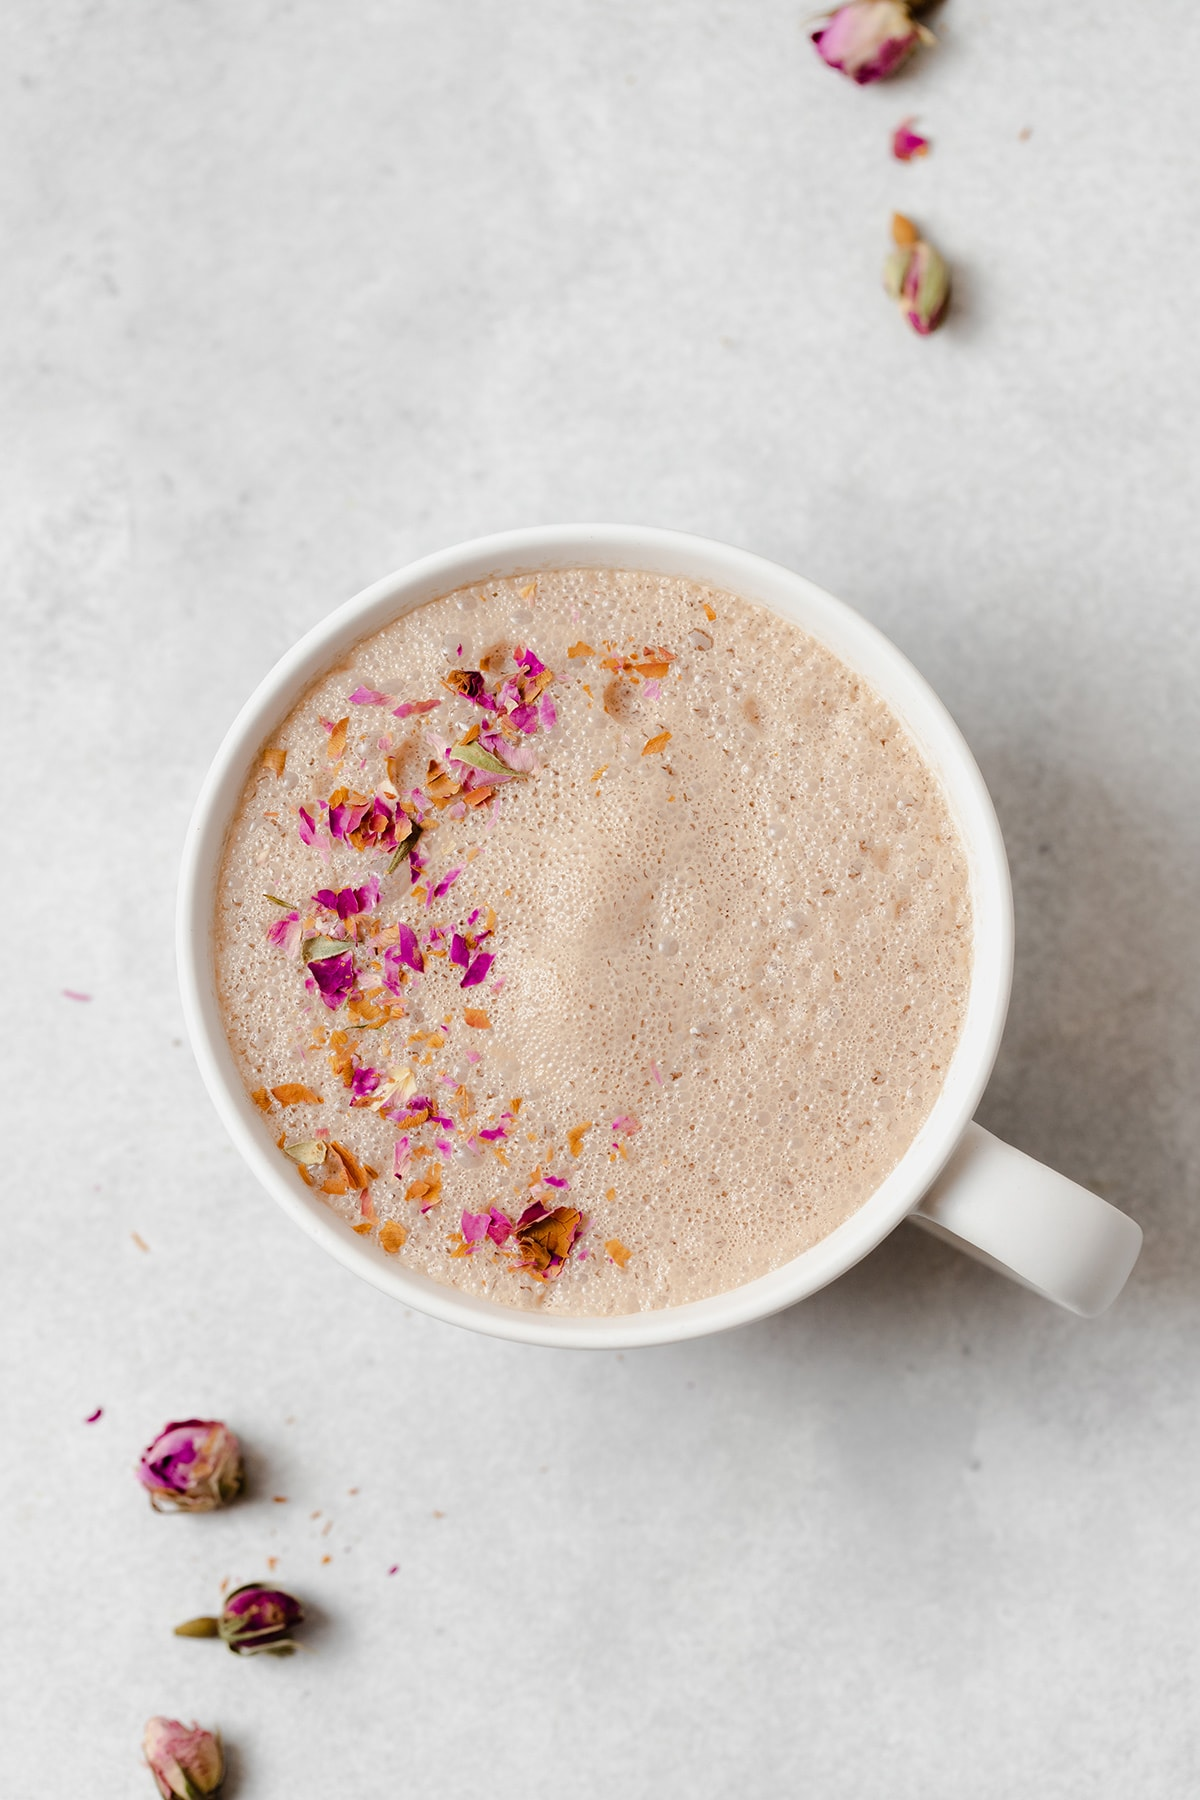 Hibiscus earl grey latte in a white mug on a light grey background. Garnished with crushed dried rose petals.